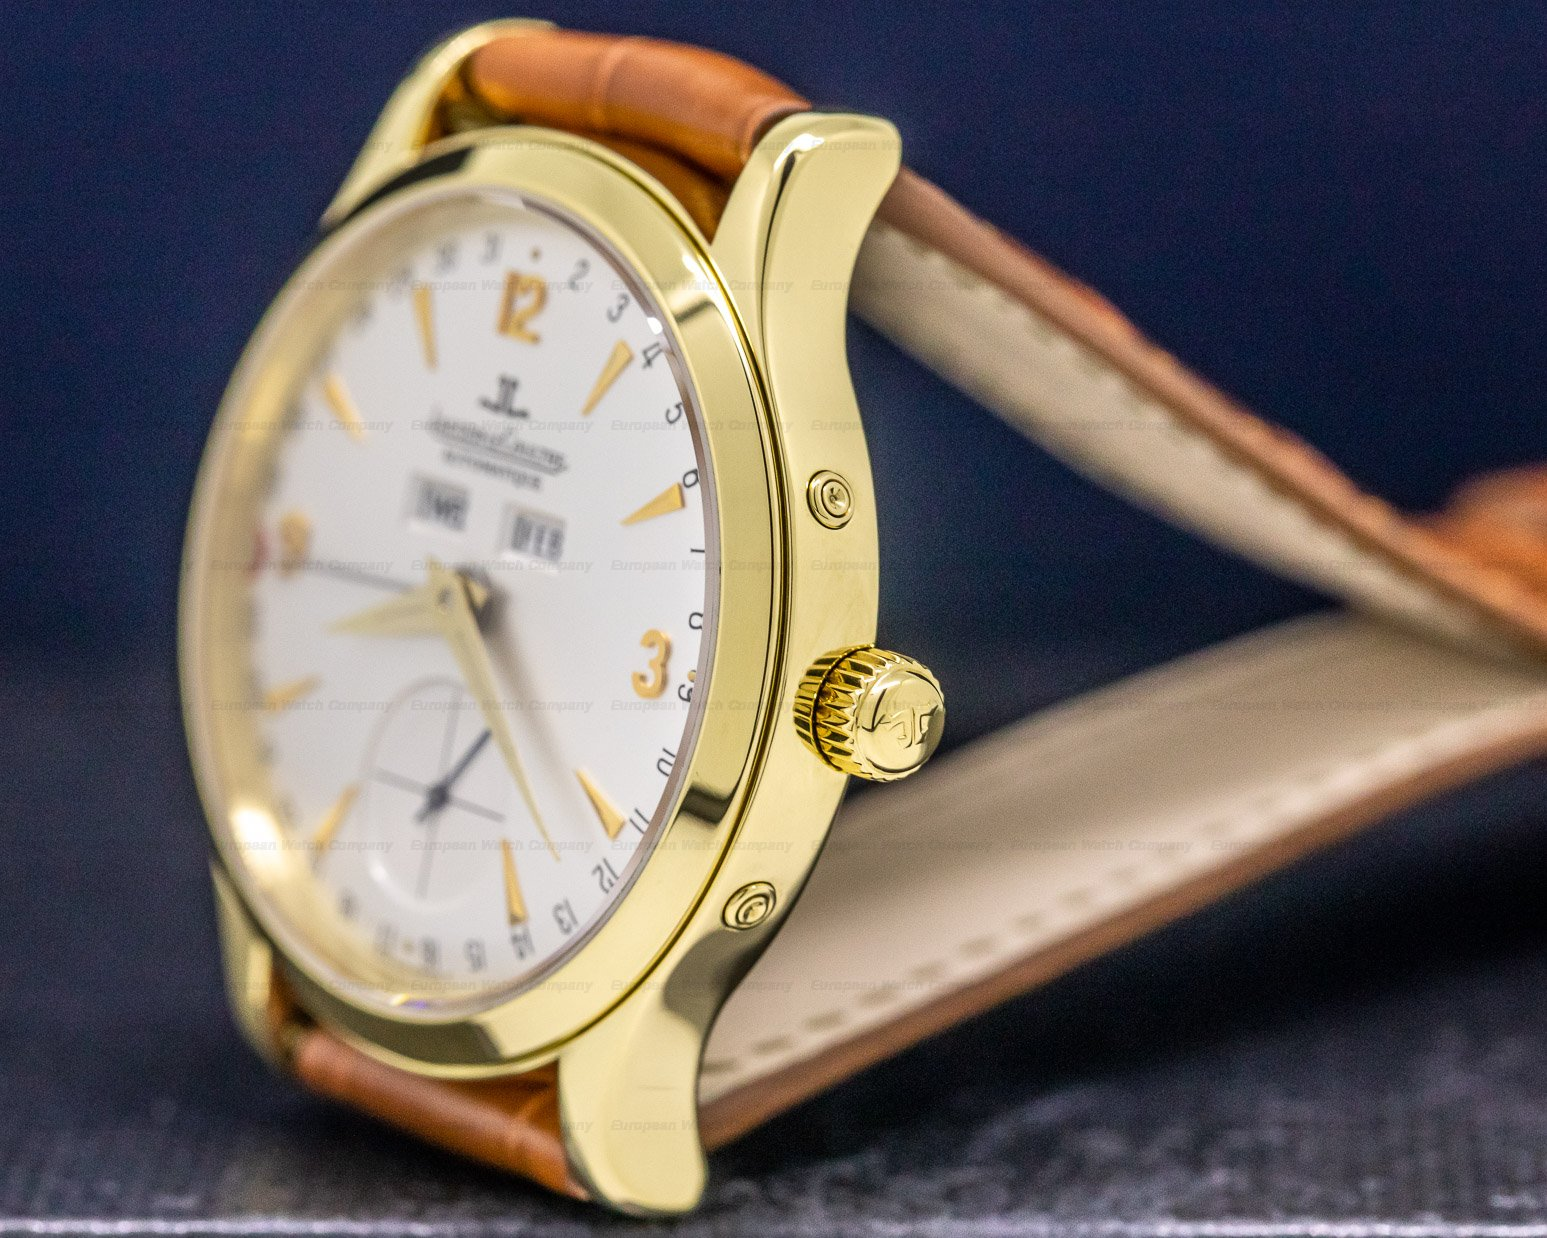 Jaeger LeCoultre 140.240.872 B Master Date 18K Yellow Gold